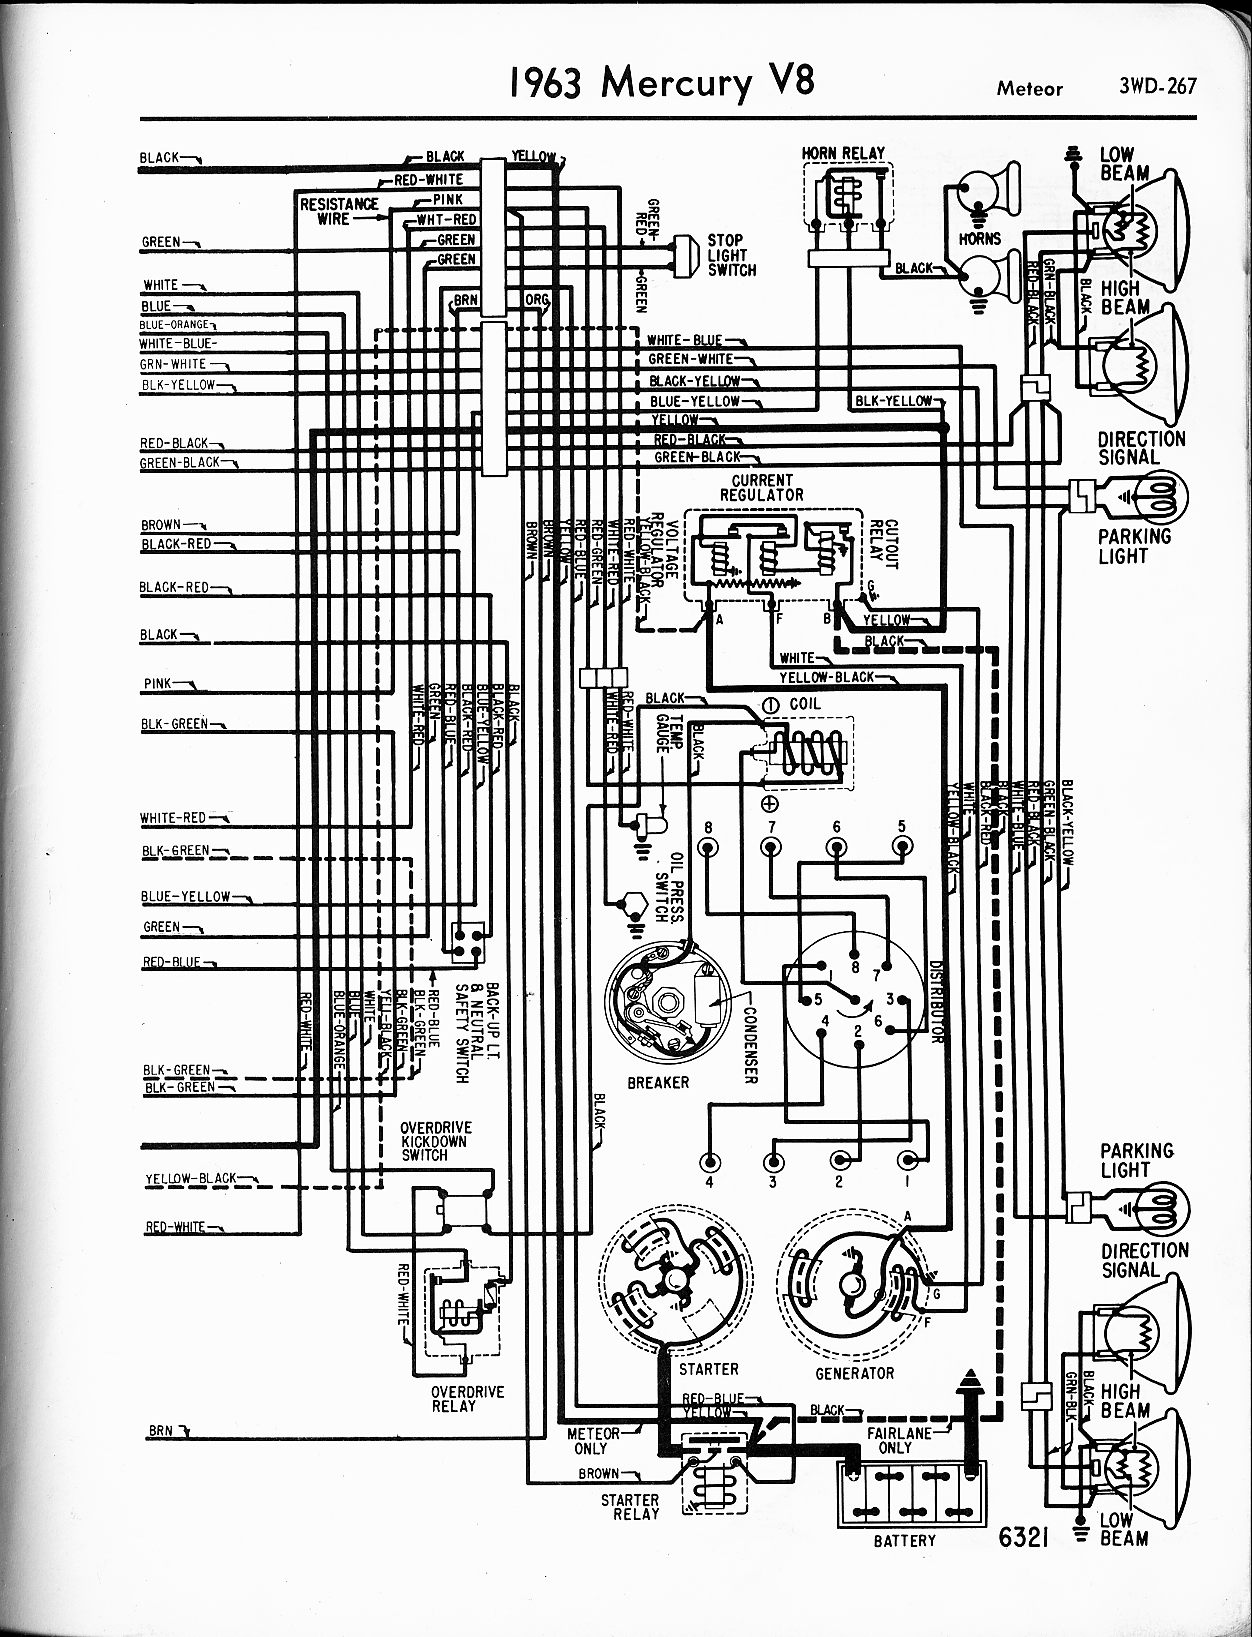 1956 mercury montclair wiring diagram schematic